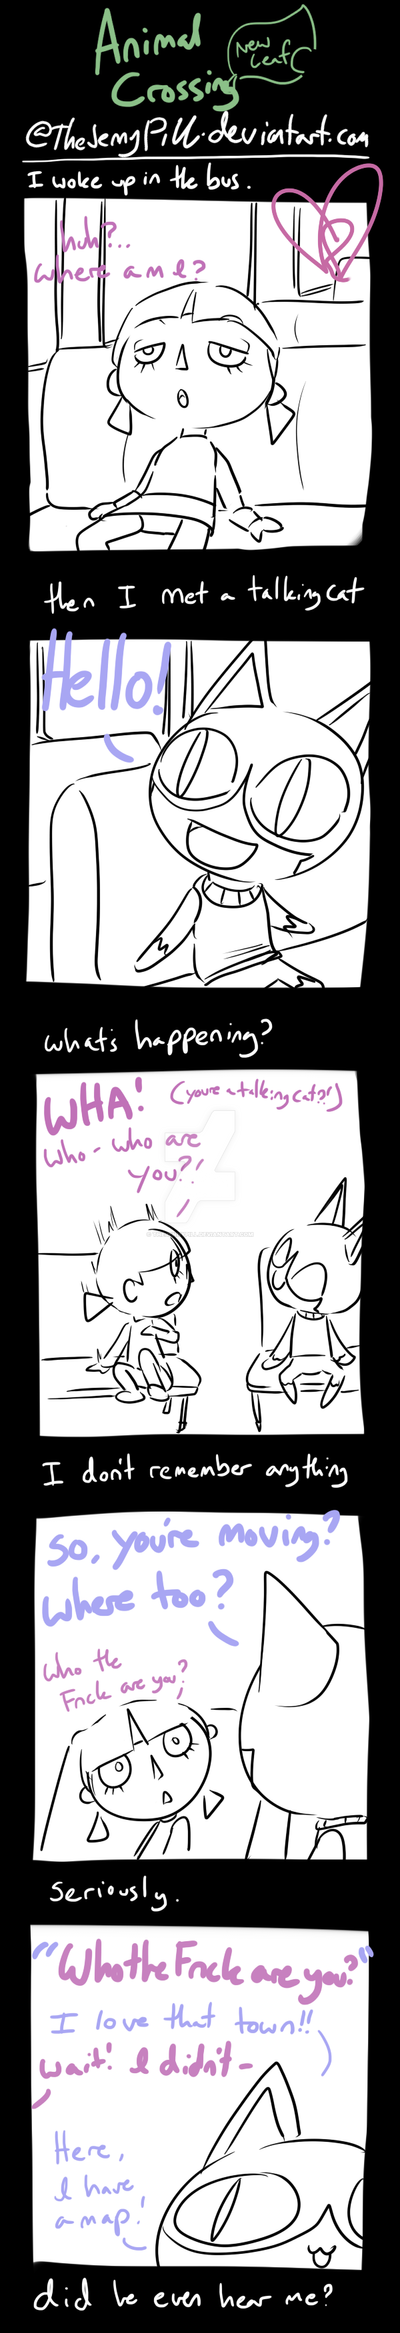 Animal Crossing New Leaf - comic 1 by TheJennyPill